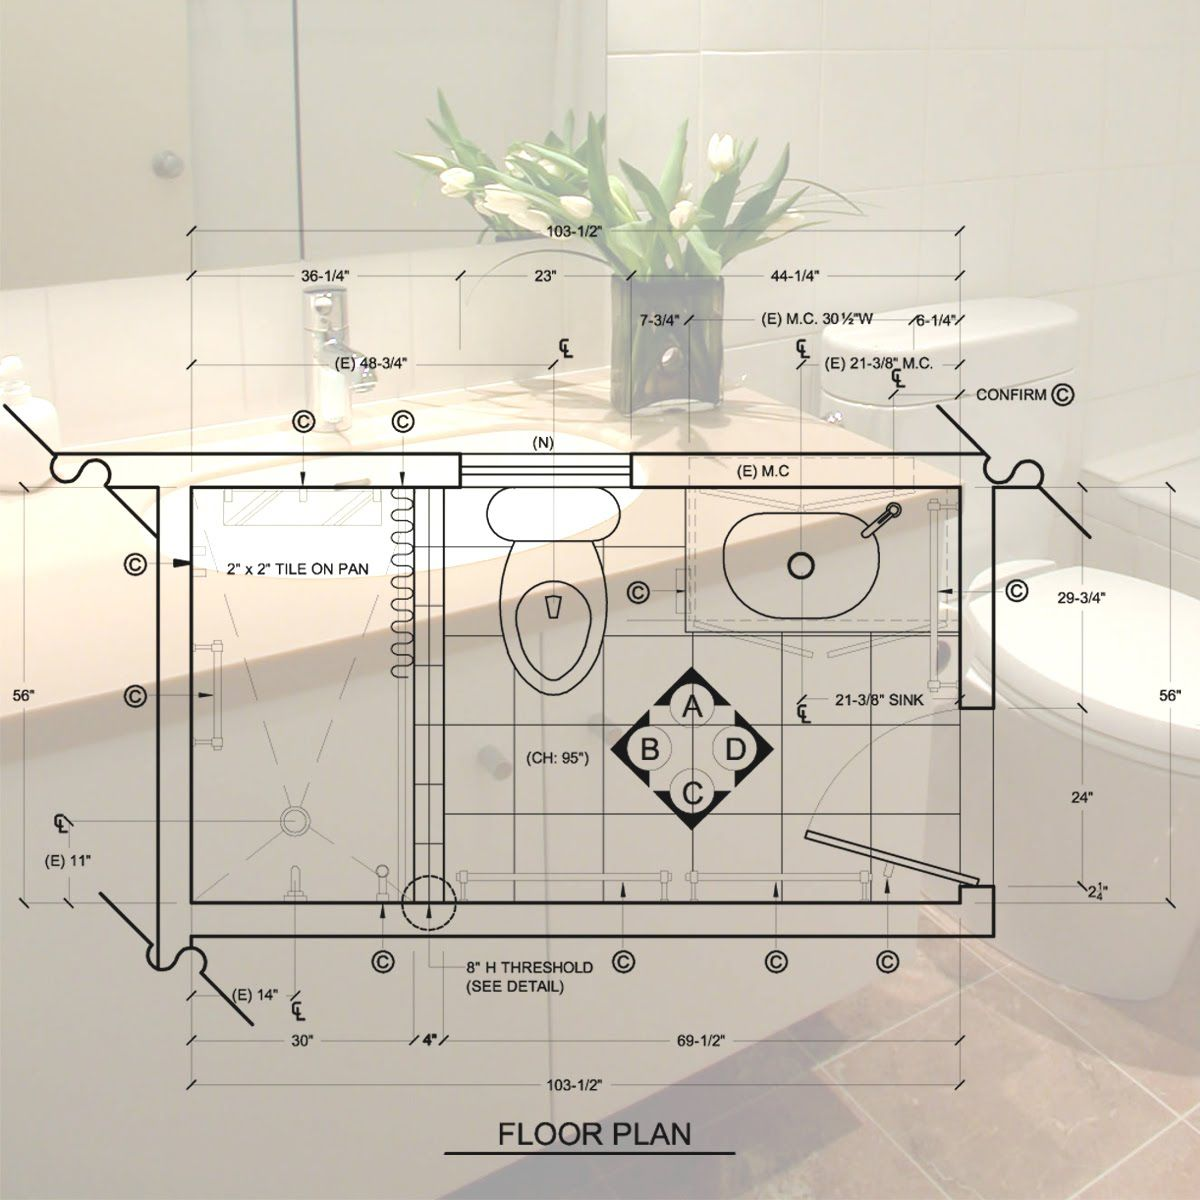 I Swear It S Exactly My Room Layout And Measurements Within A